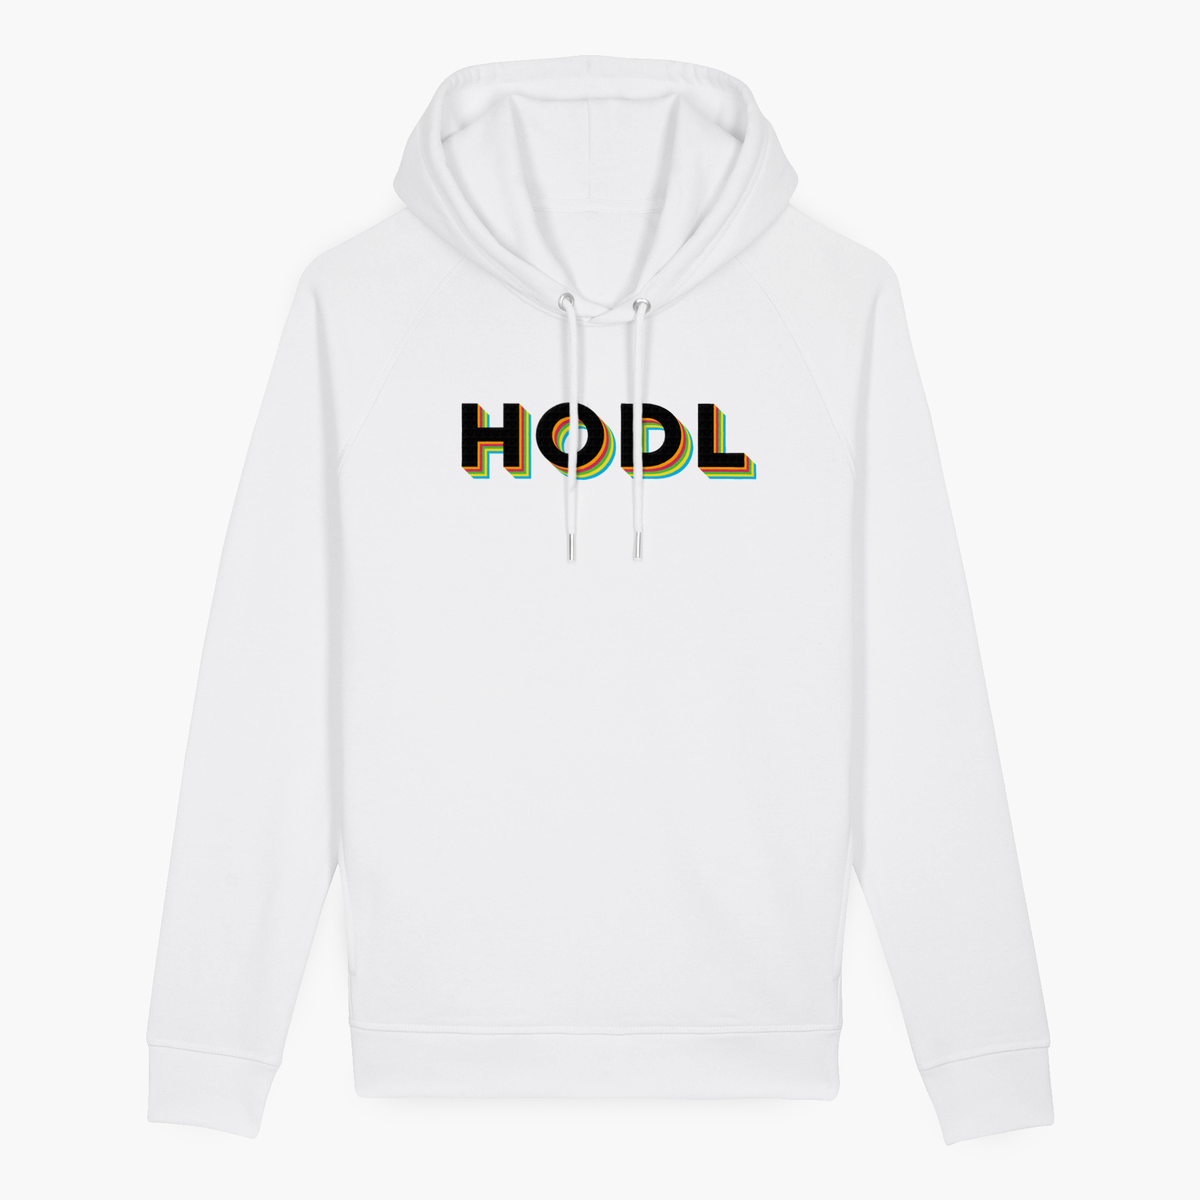 HODL limited edition Hoodie